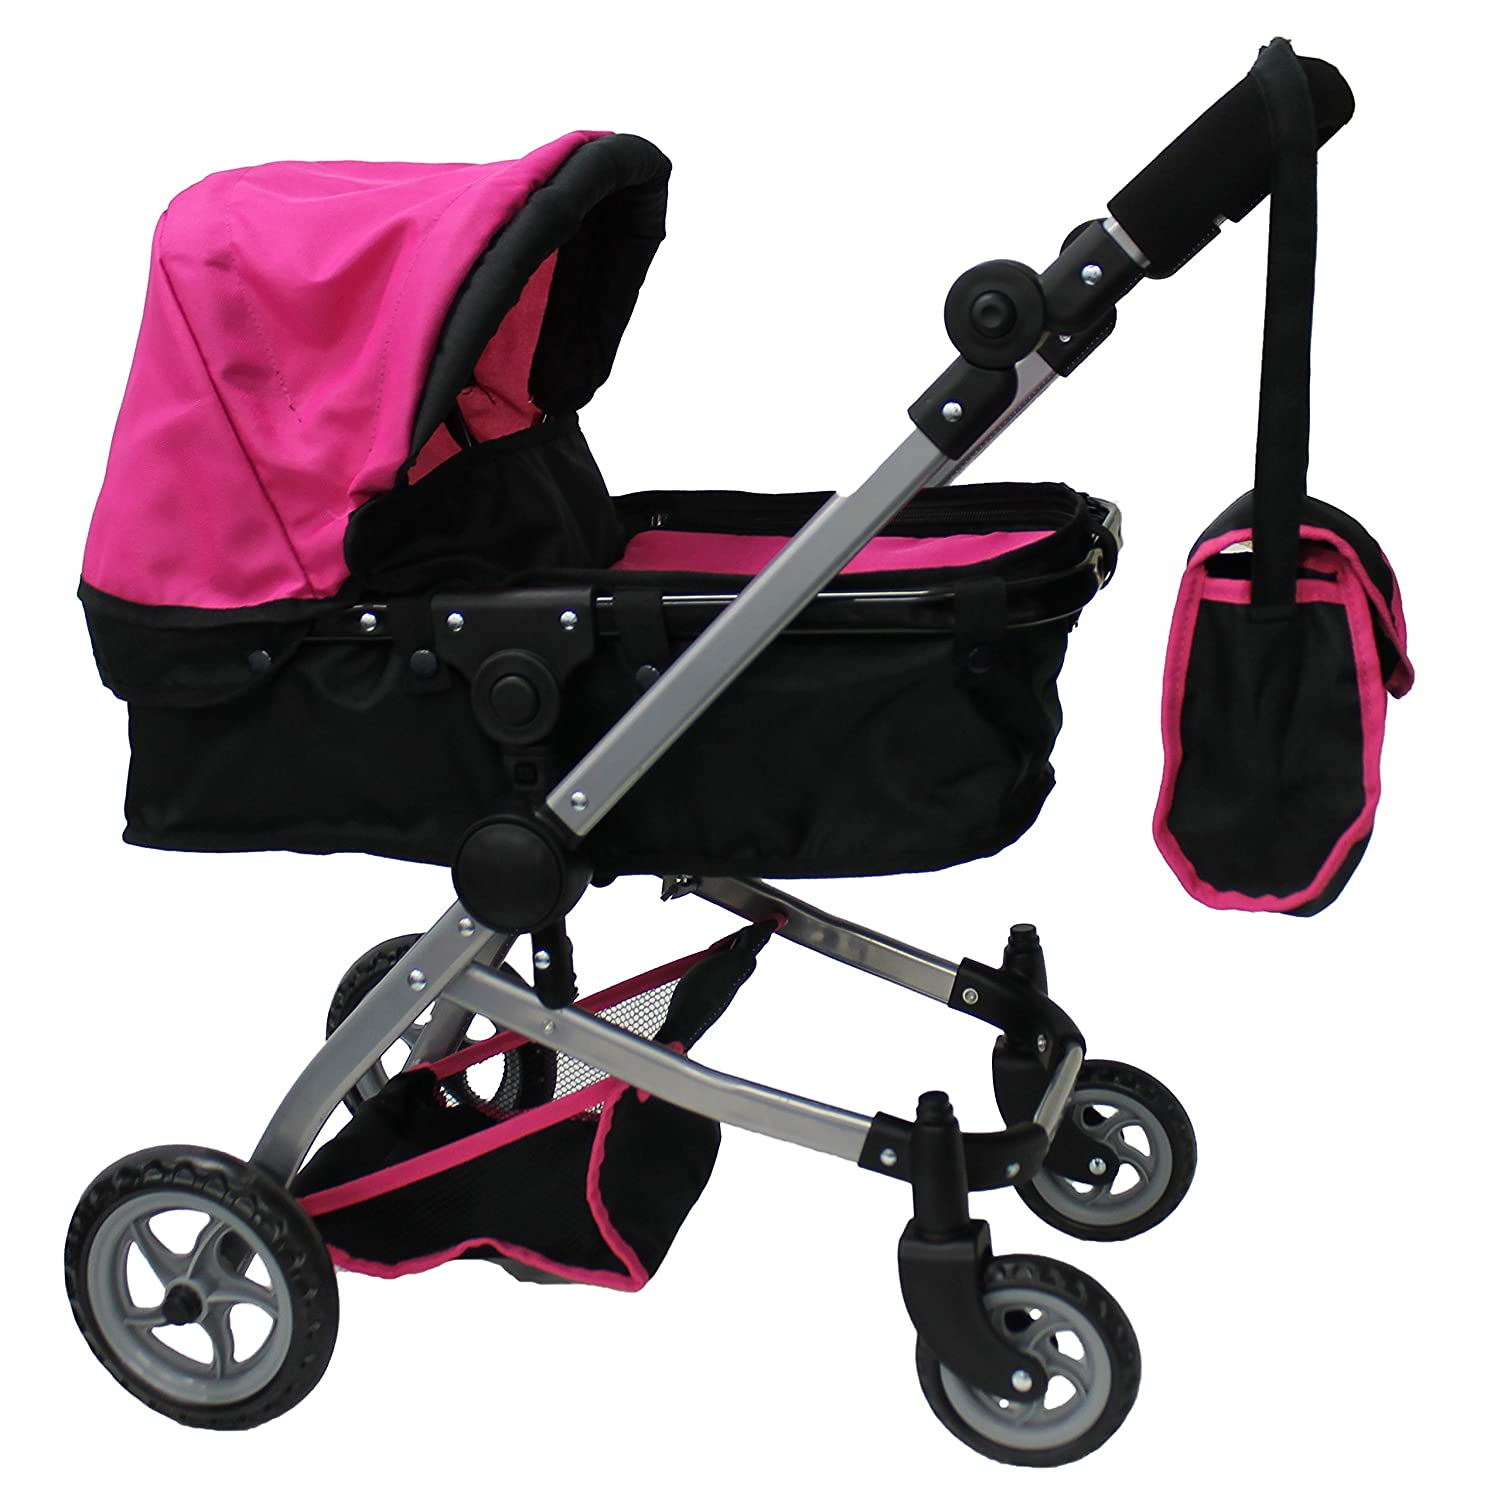 Babyboo Doll Pram with Swiveling Wheels, Adjustable Handle and Carriage Bag, Pink